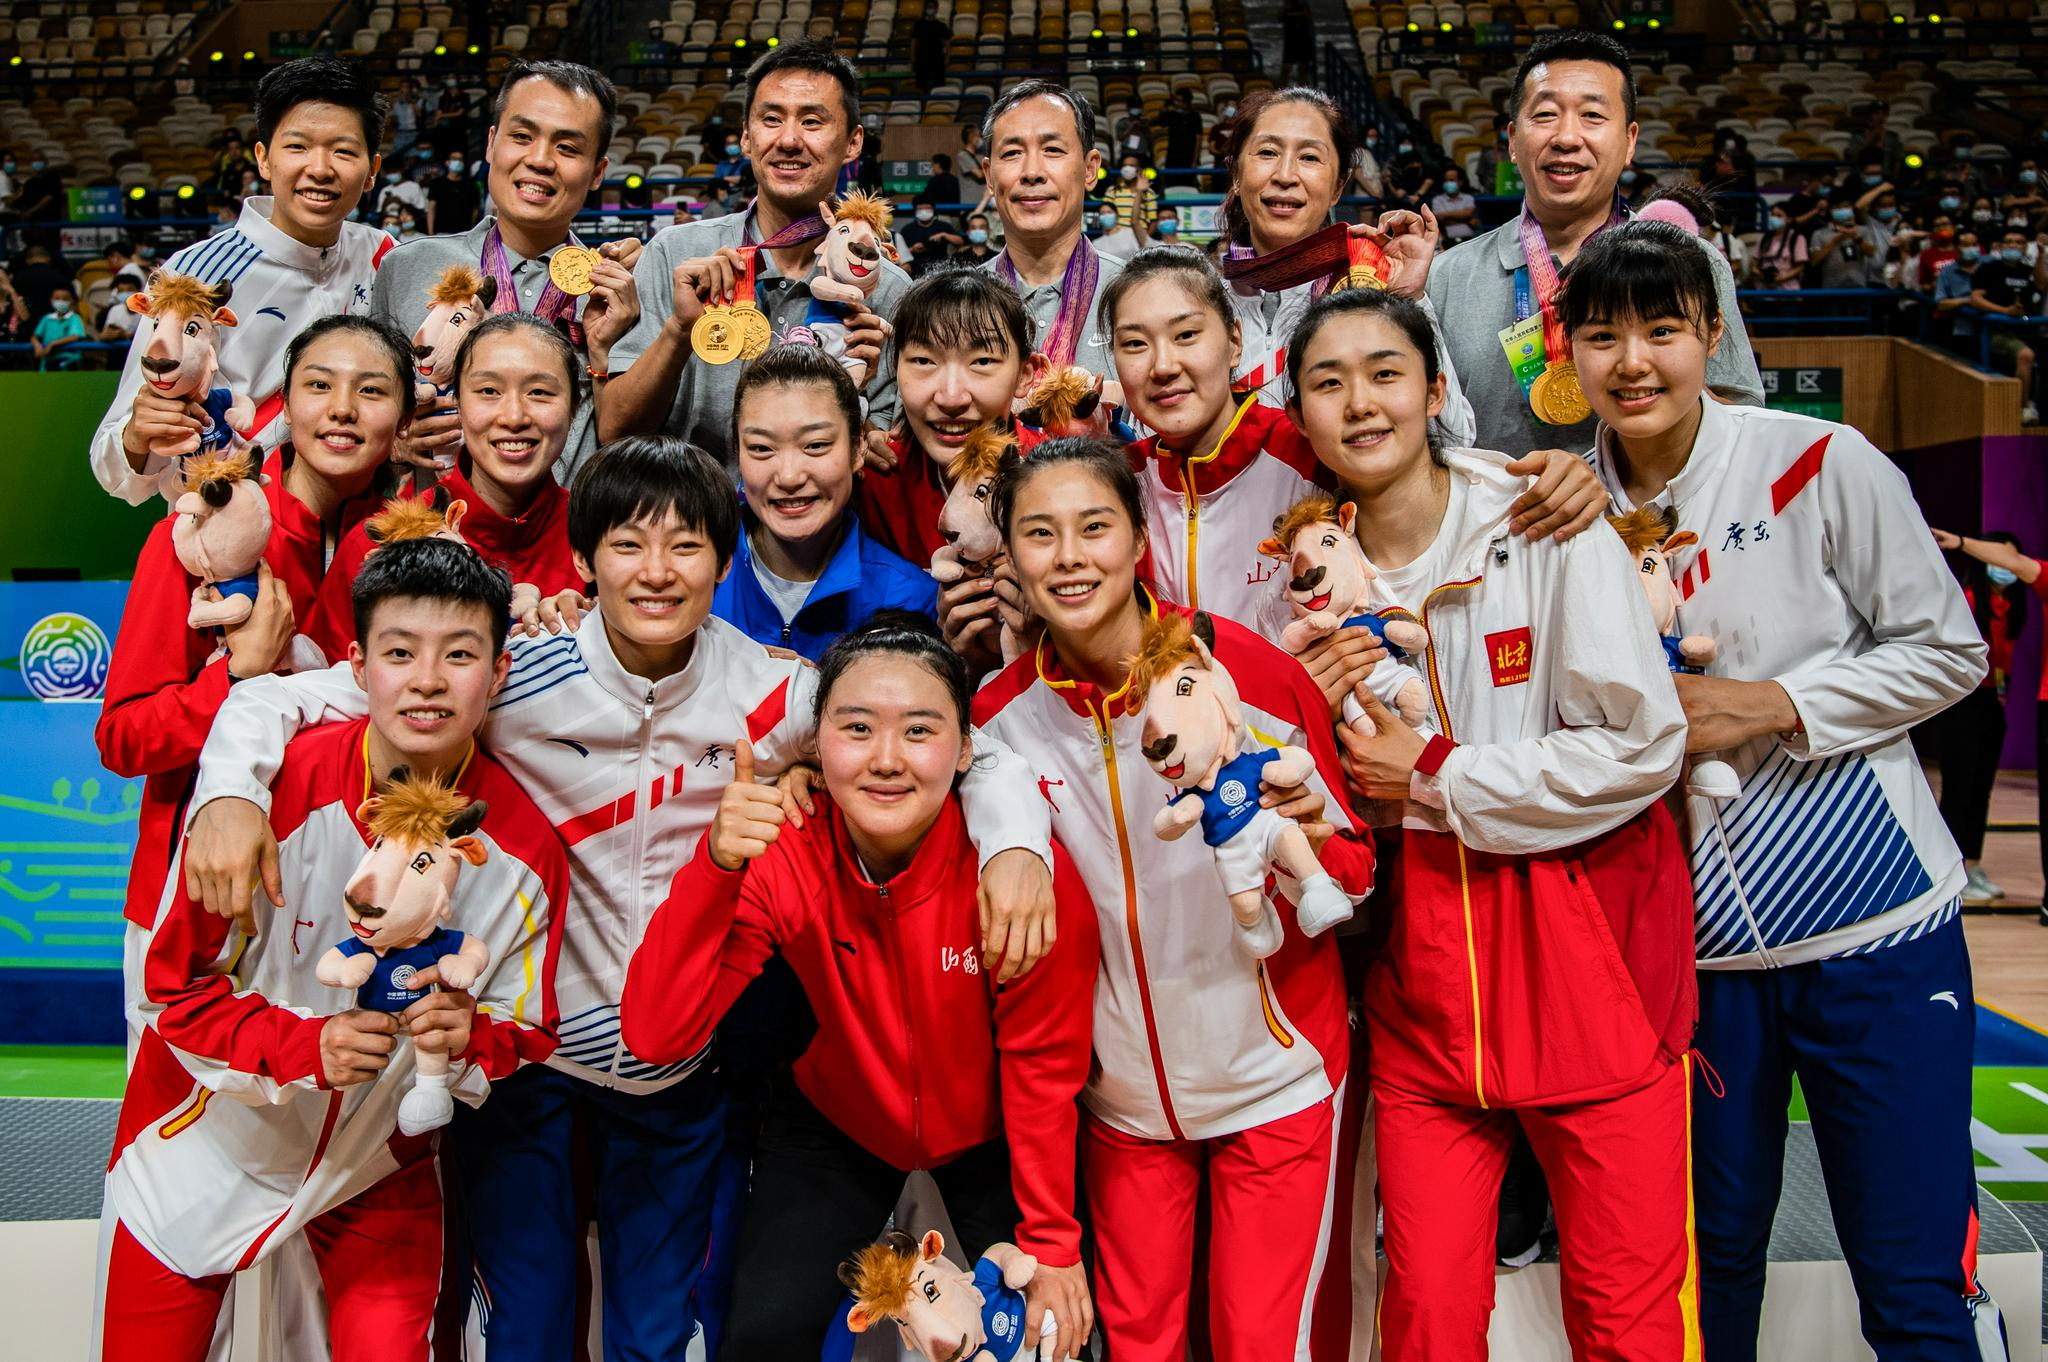 The women's basketball team won the gold.